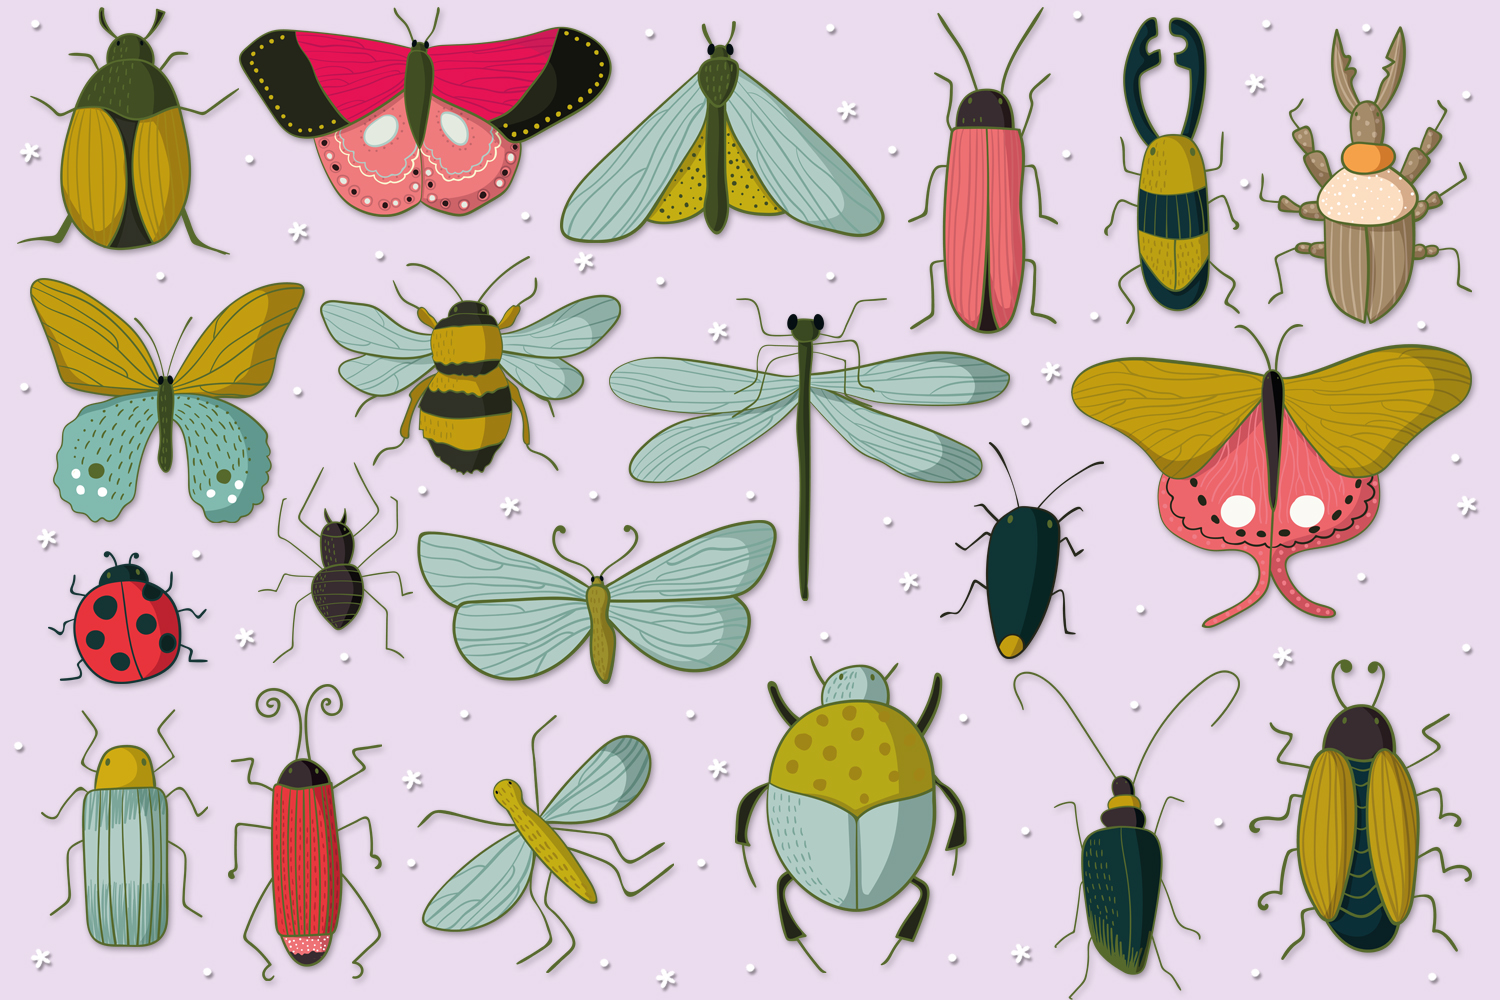 Insects and Bugs example image 2